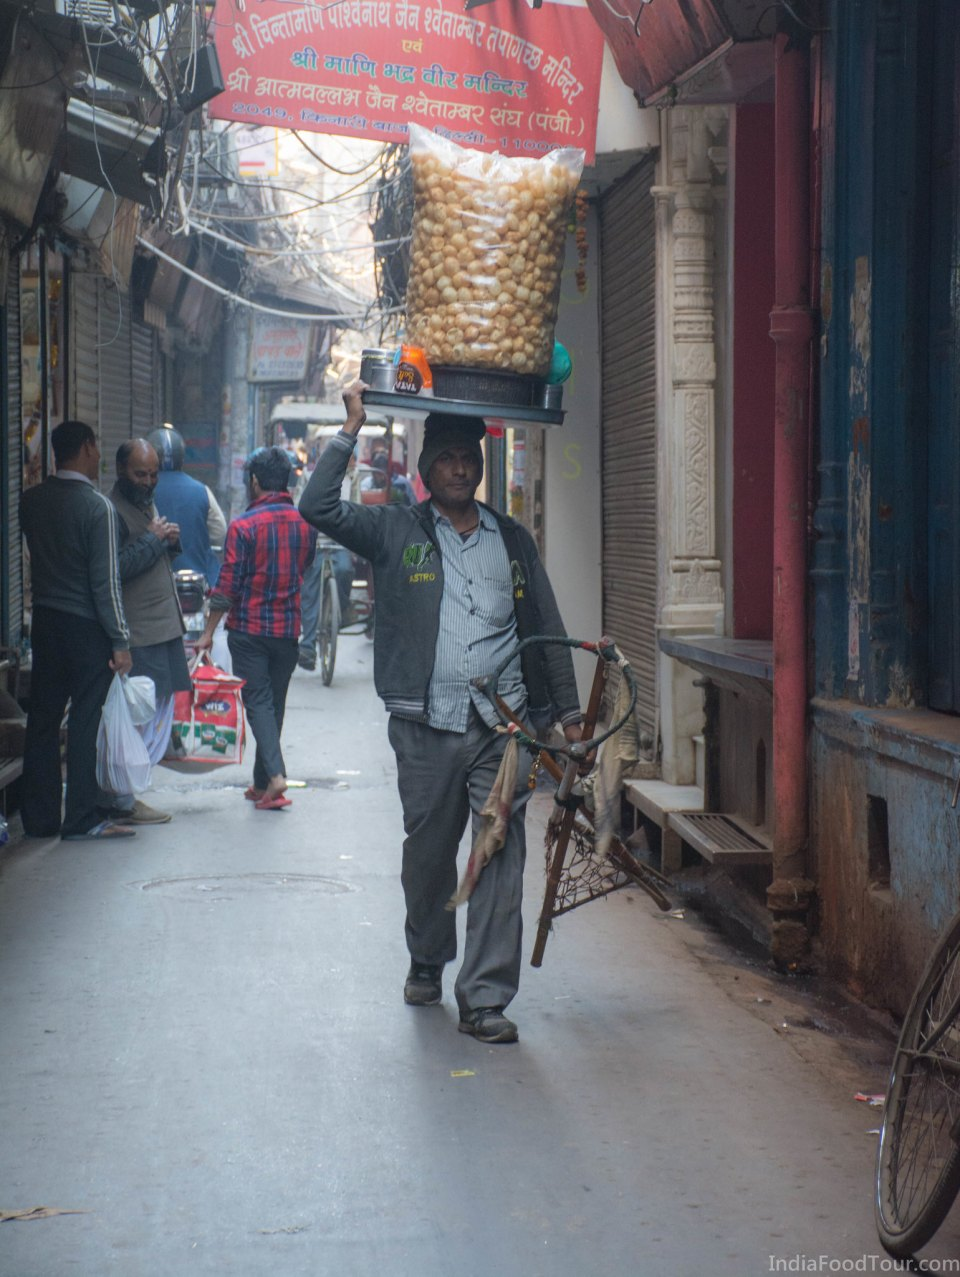 A Golgappa vendor walking through Kinari Bazar